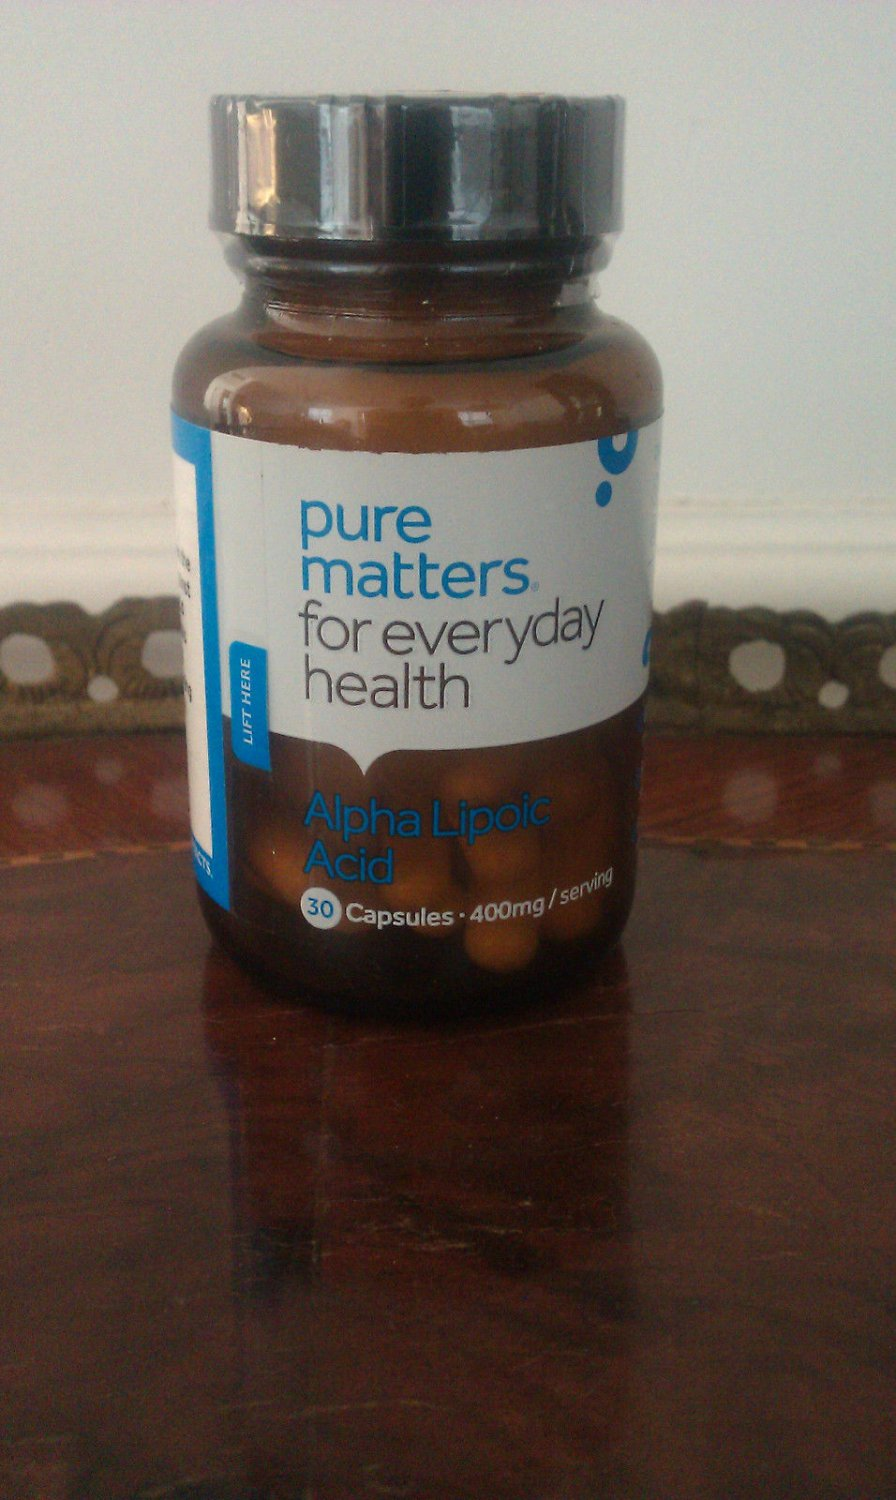 PURE MATTERS FOR EVERYDAY HEALTH ALPHA LIPOIC ACID 30 CAPSULES EXPIRED 01/2017 EXPIRED